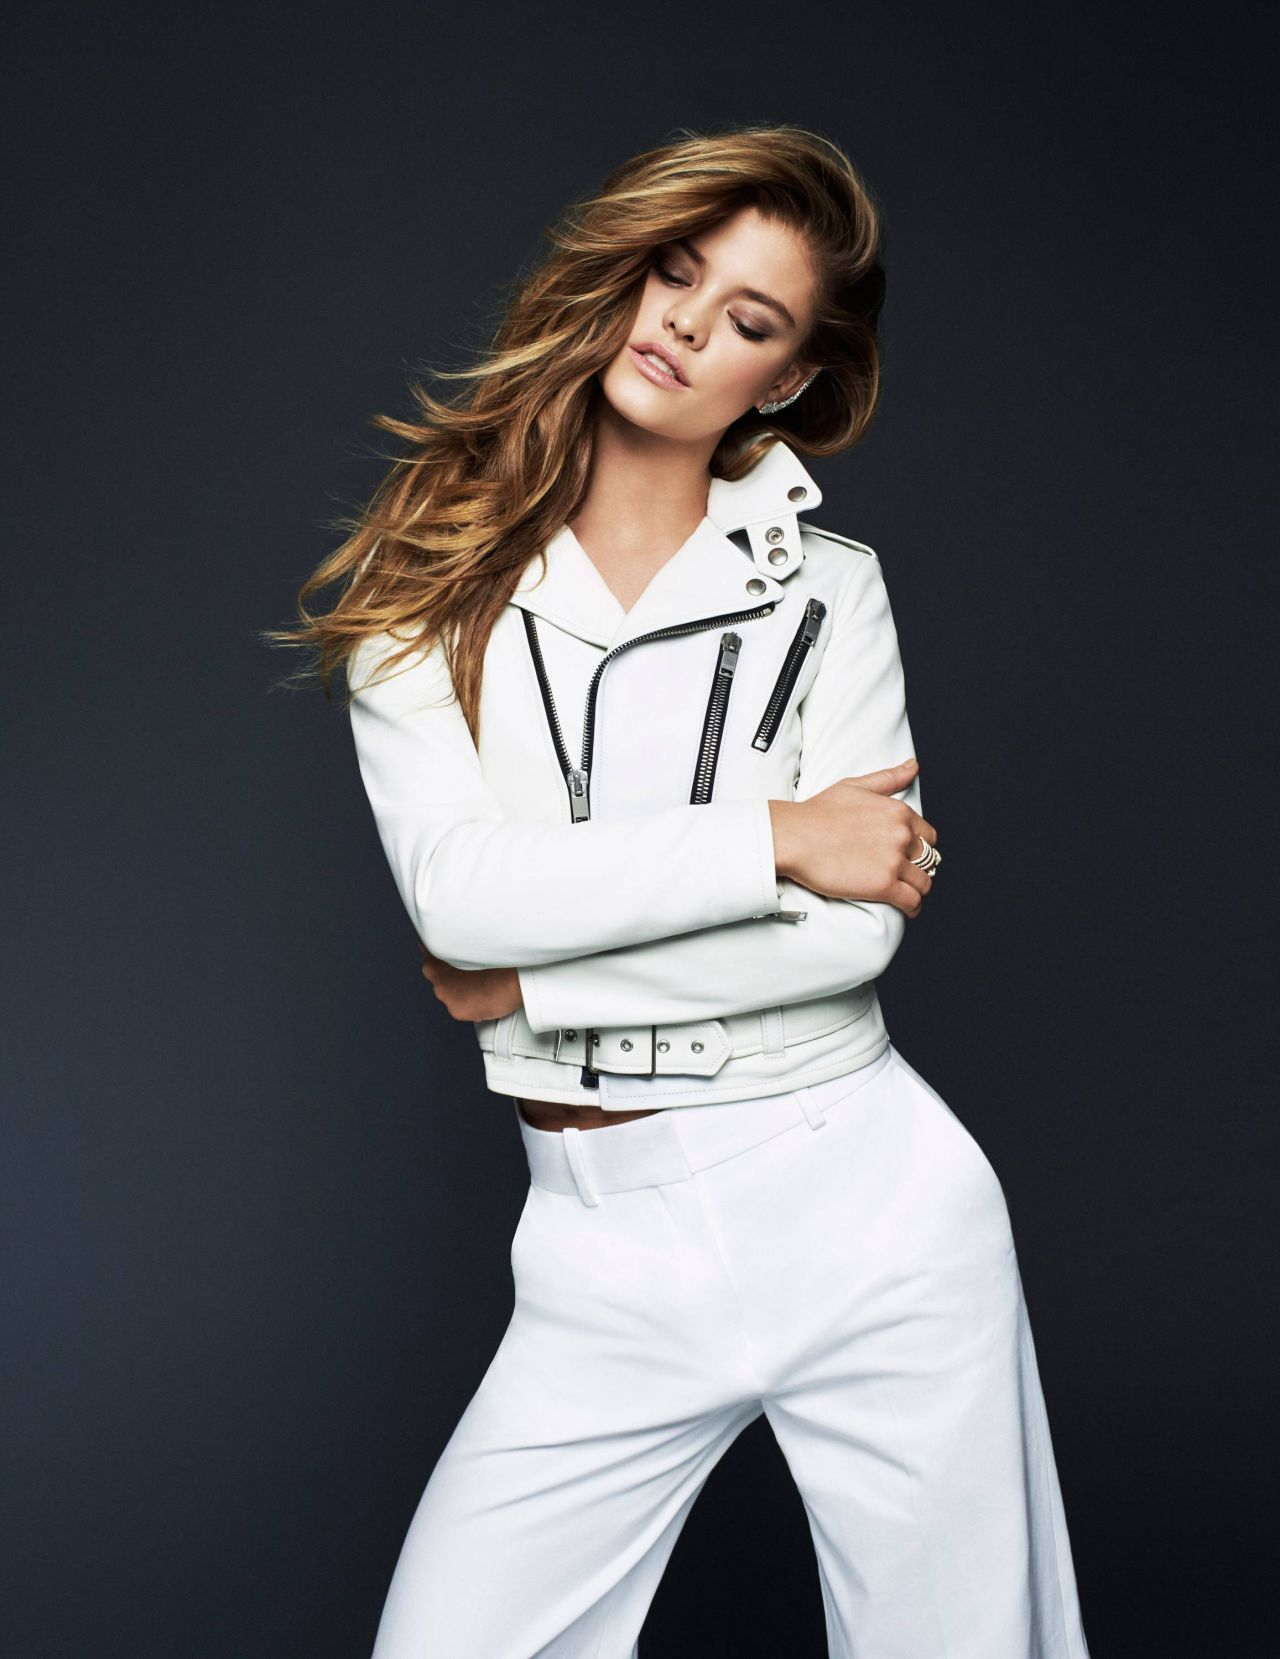 Nina Agdal - Editorialist : Print Edition - Spring/Summer 2014